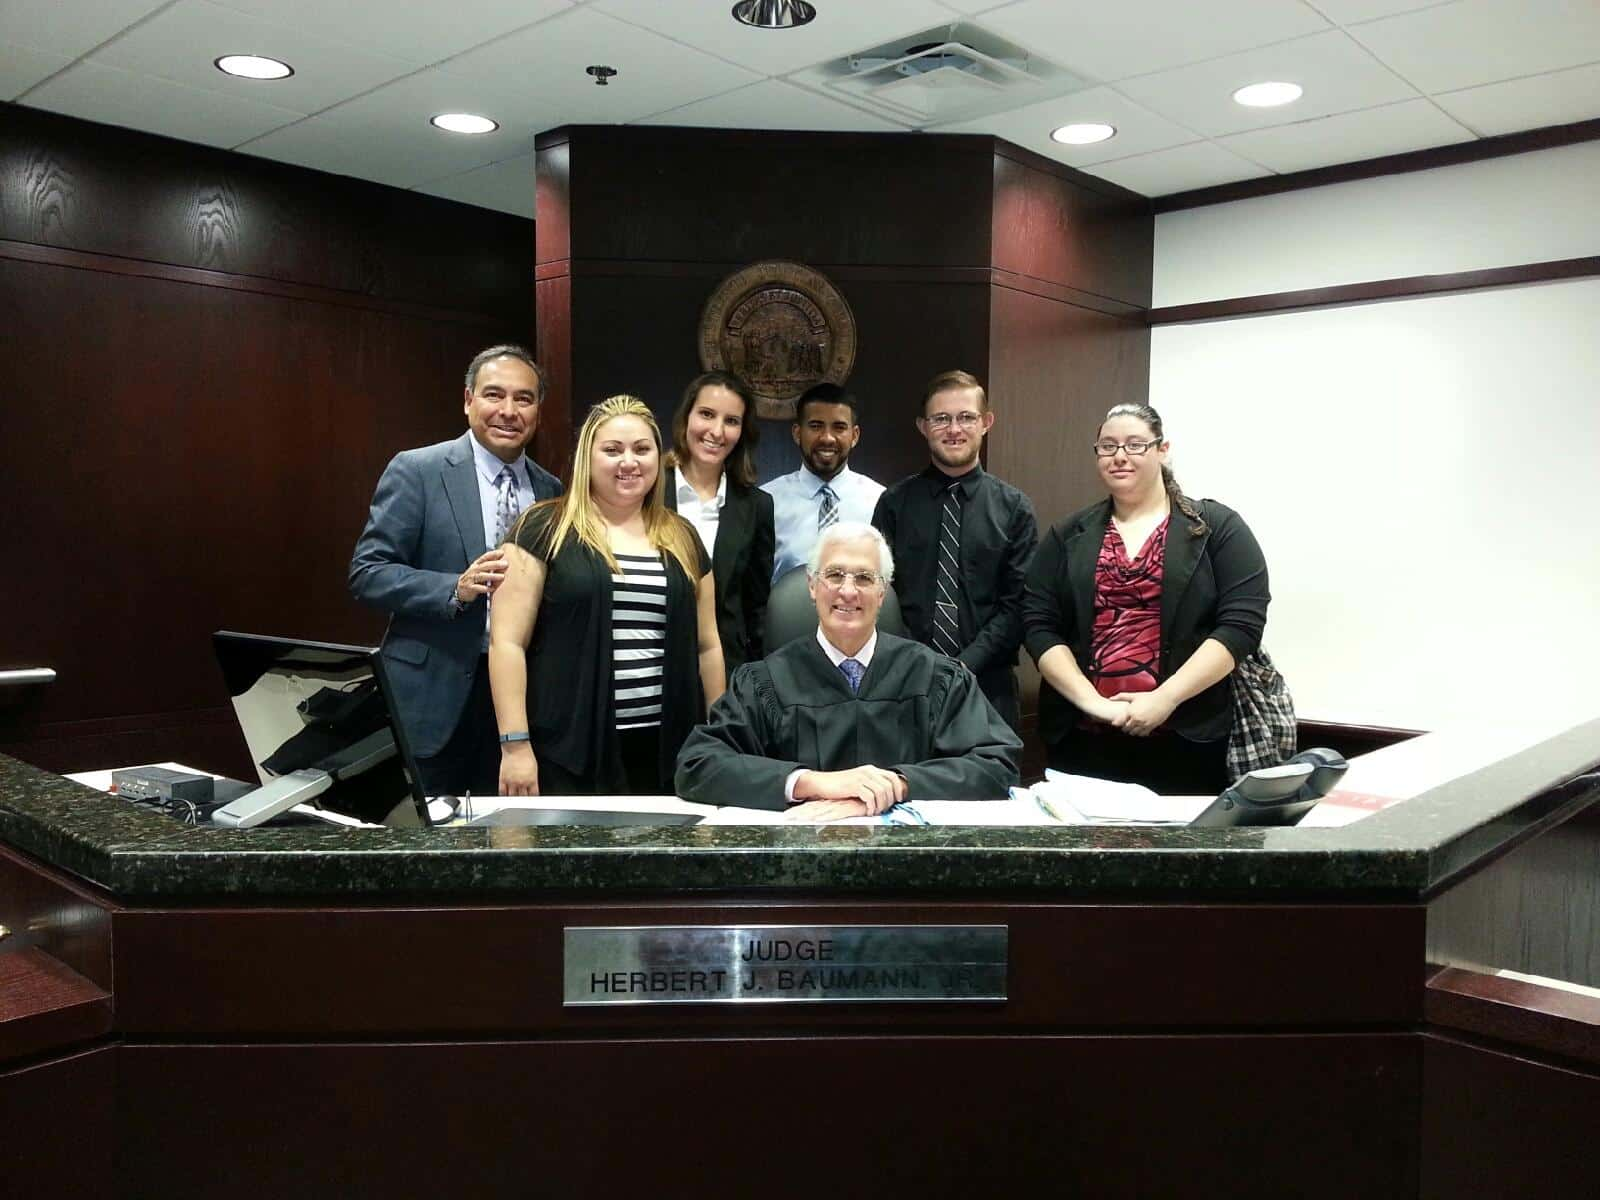 Tampa Students Take a Trip to Visit 13th Circuit Court